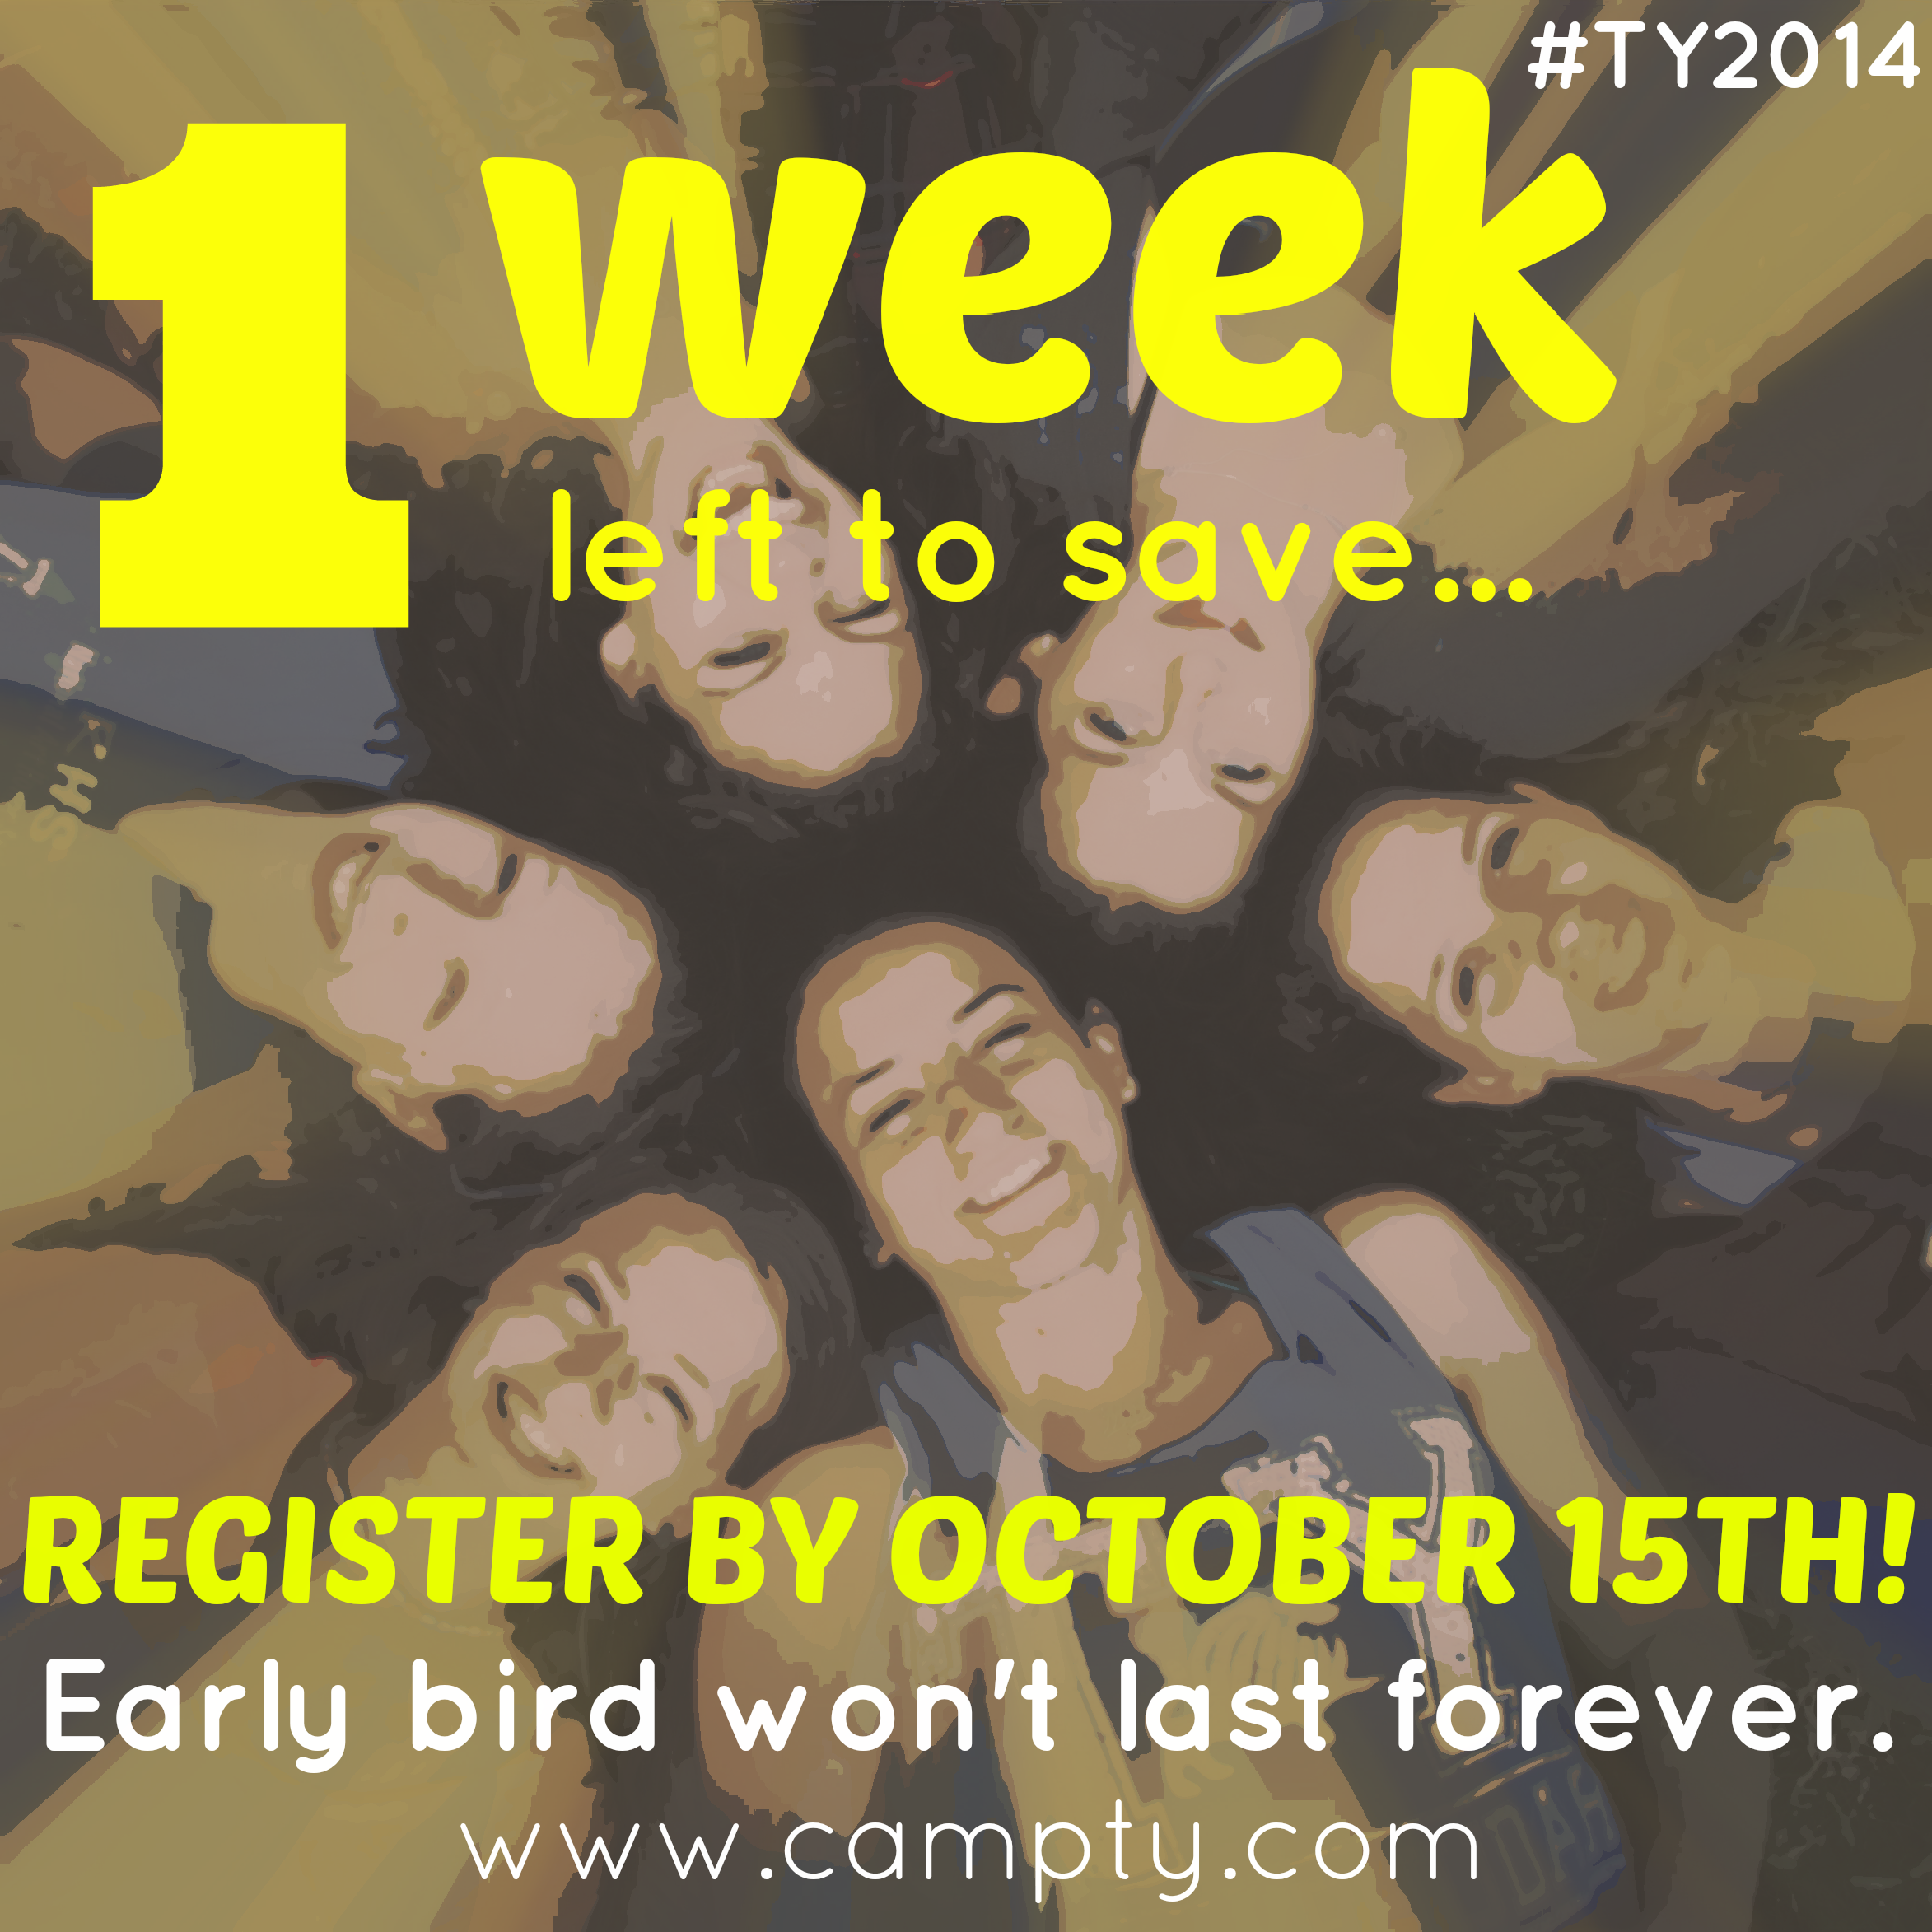 Just One More Week to Register at Last Year's Prices